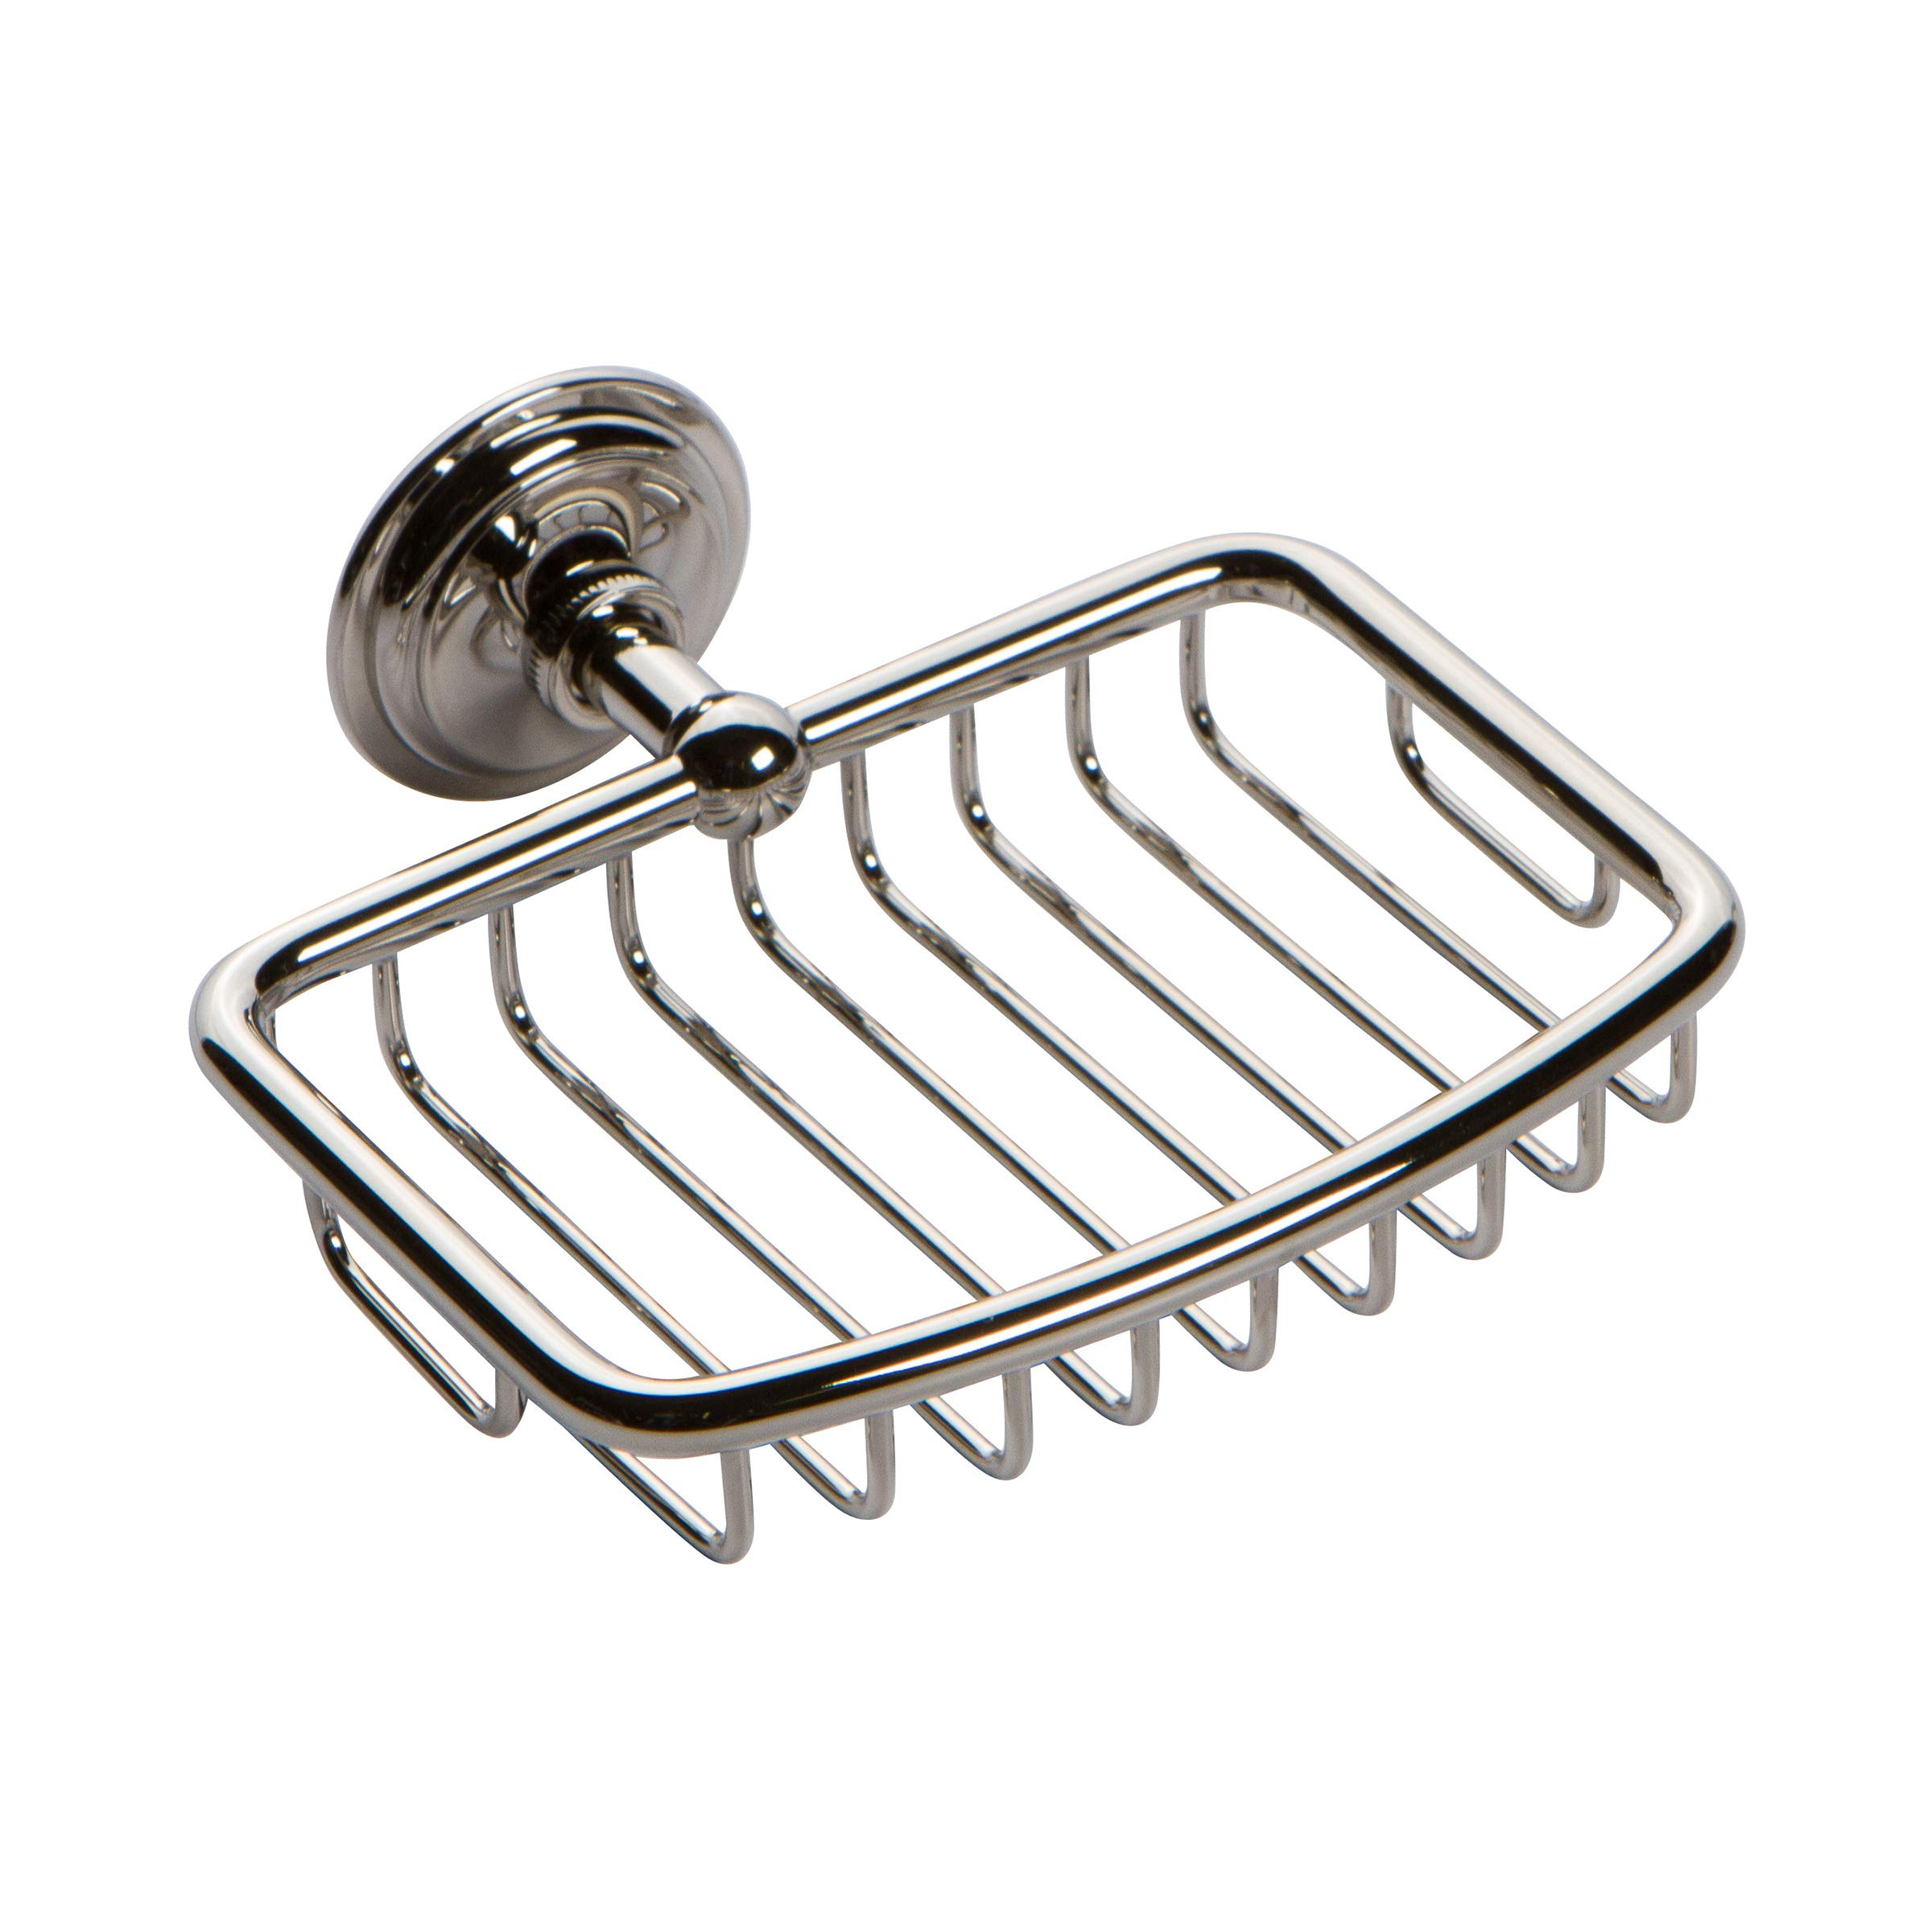 Ginger 26550/PN London Terrace Wall Mounted Shower Soap Basket, Polished Nickel